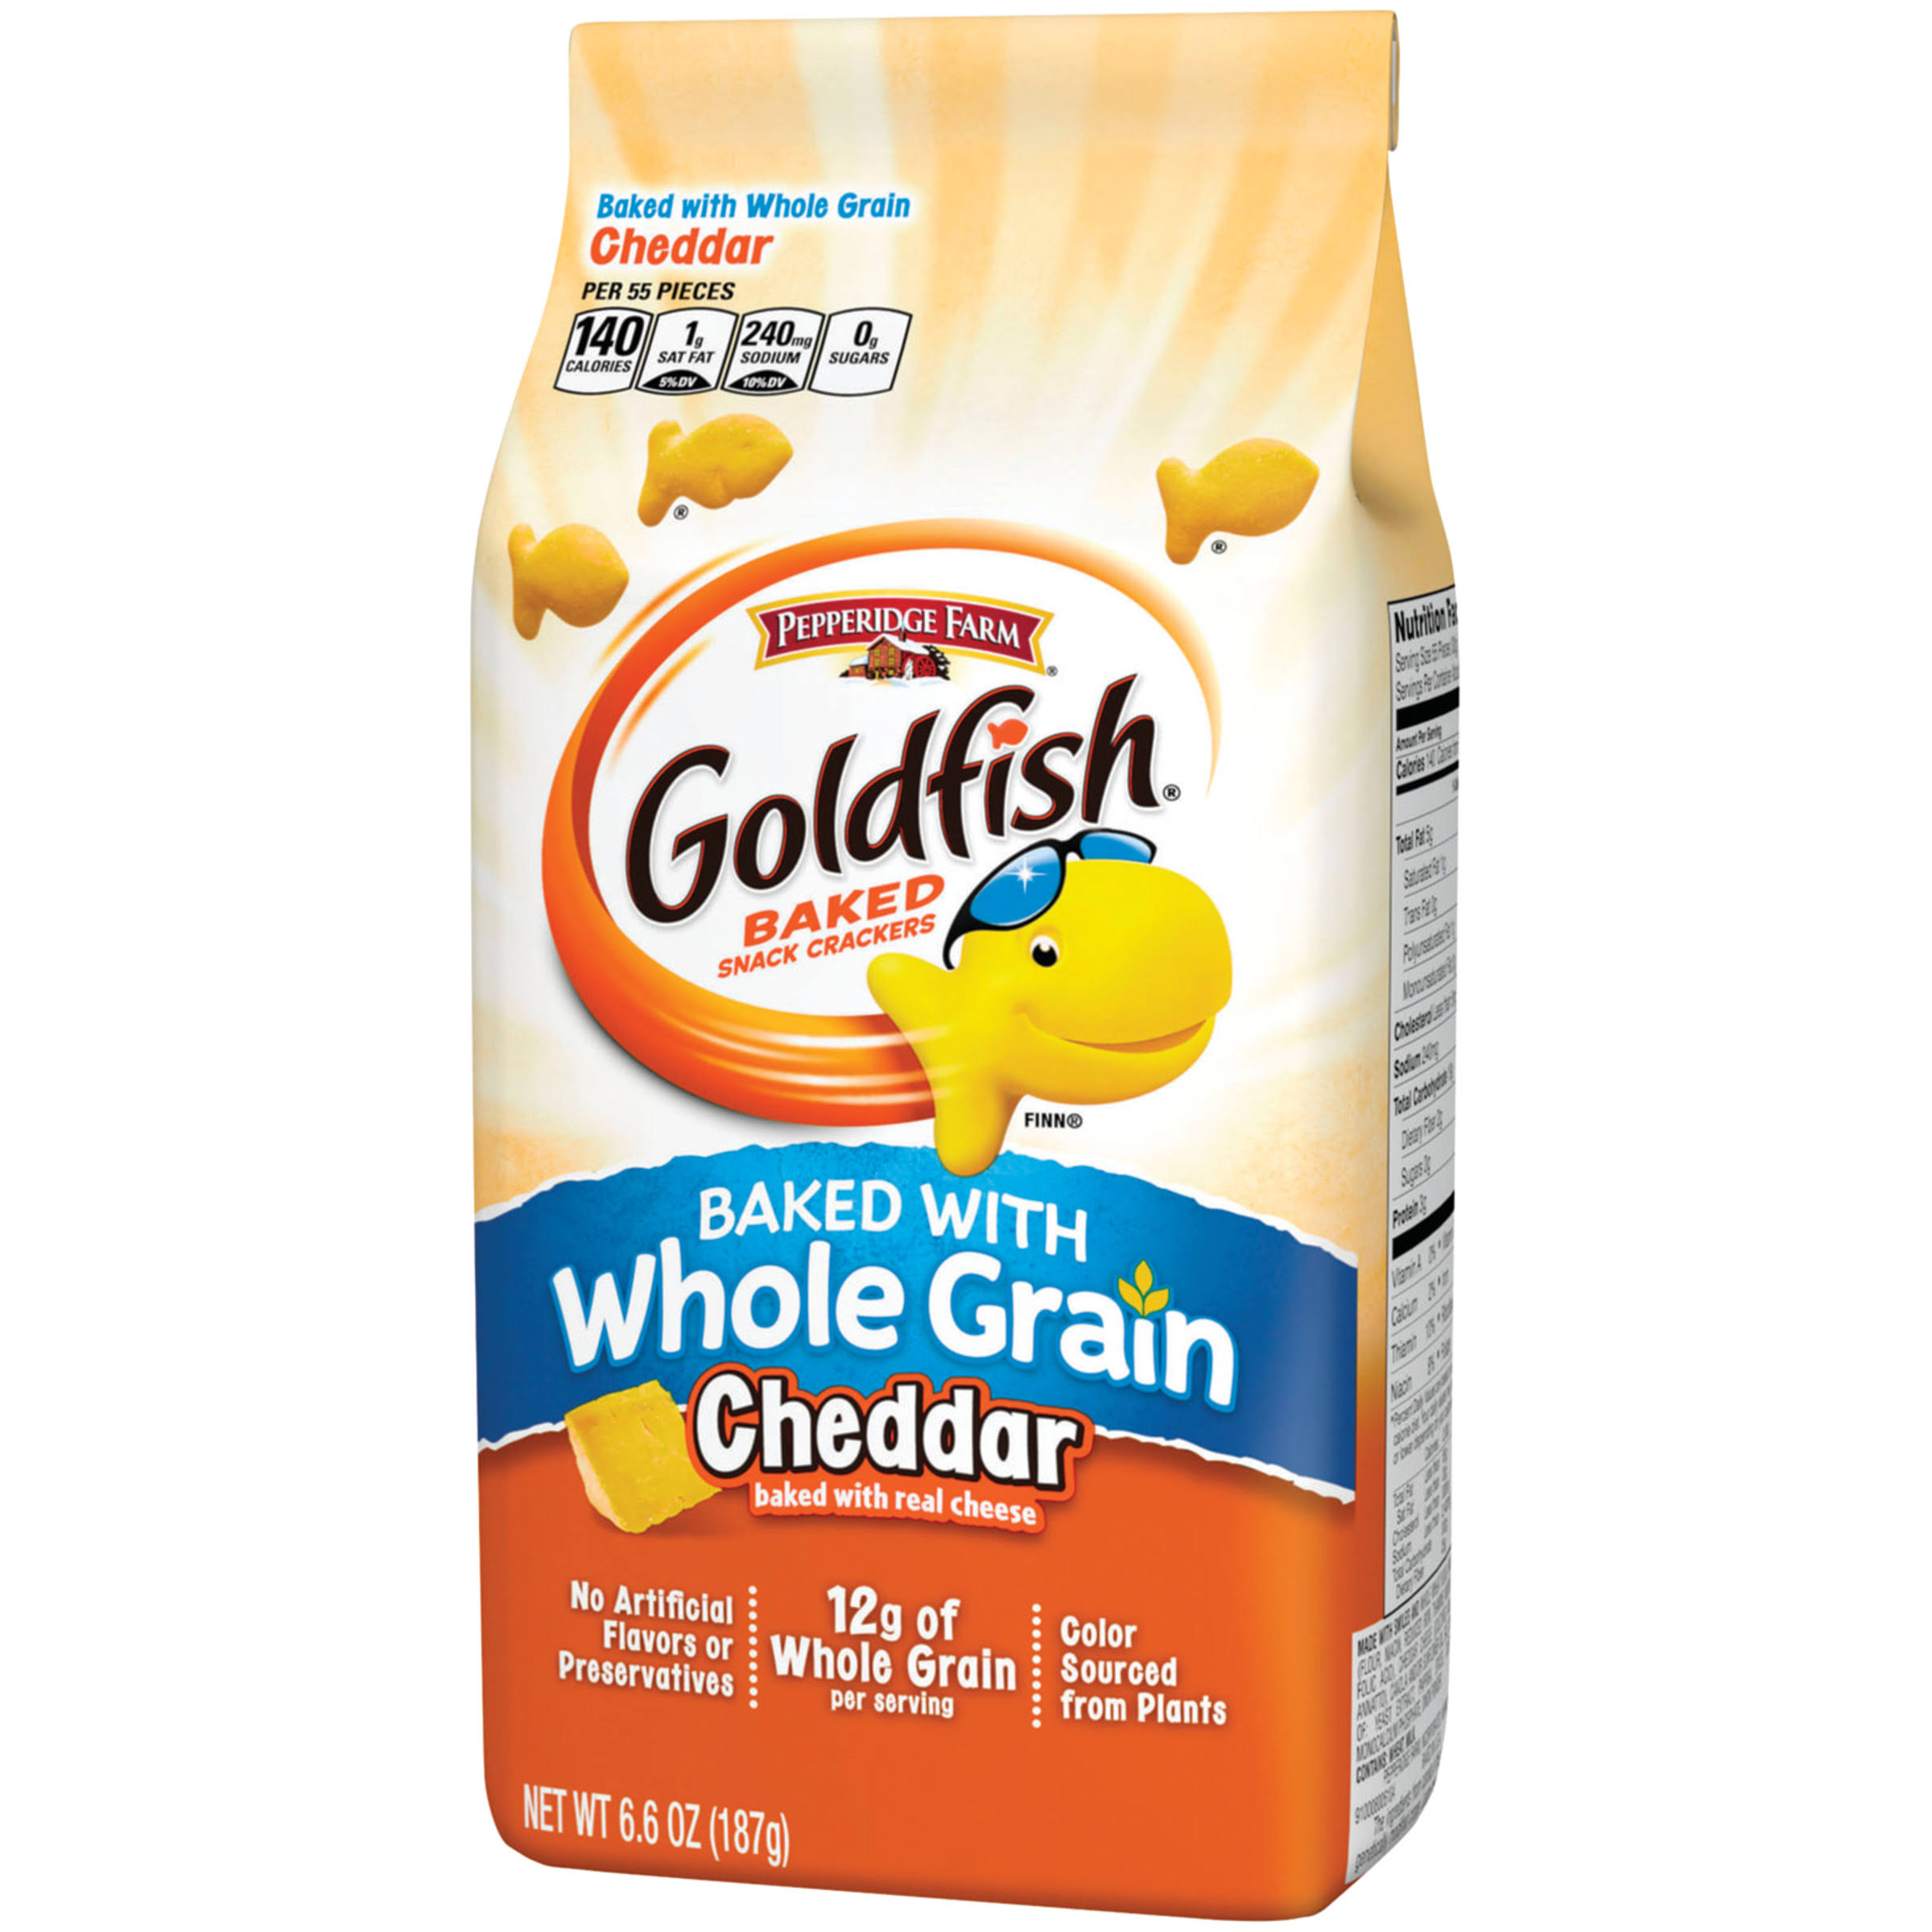 Pepperidge Farm Goldfish Whole Grain Cheddar - 6.6oz